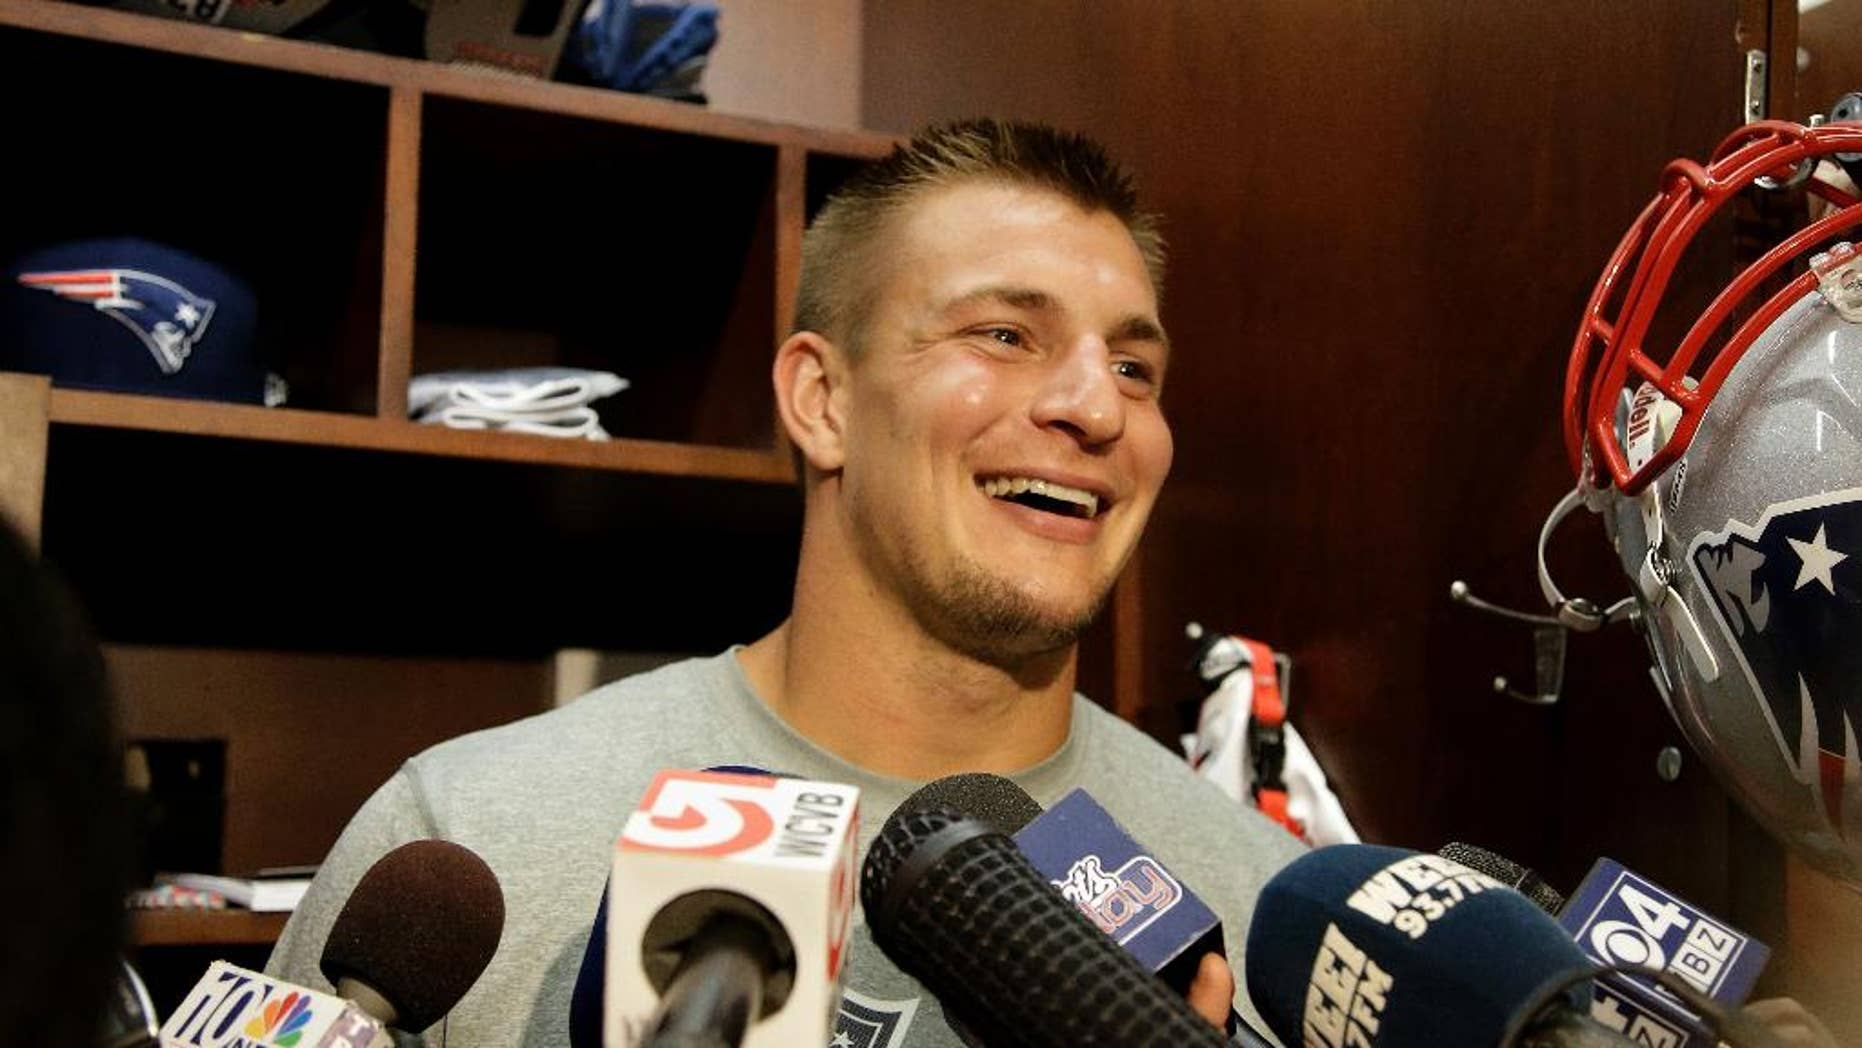 FILE - This Sept. 4, 2013, file photo shows New England Patriots tight end Rob Gronkowski smiling as he talks to the media at the NFL football team's facility in Foxborough, Mass. Gronkowski stood in front of his Gillette Stadium locker Monday, Sept. 1, 2014, and announced he will be playing in the New Patriots' opener at Miami this Sunday. (AP Photo/Stephan Savoia, File)